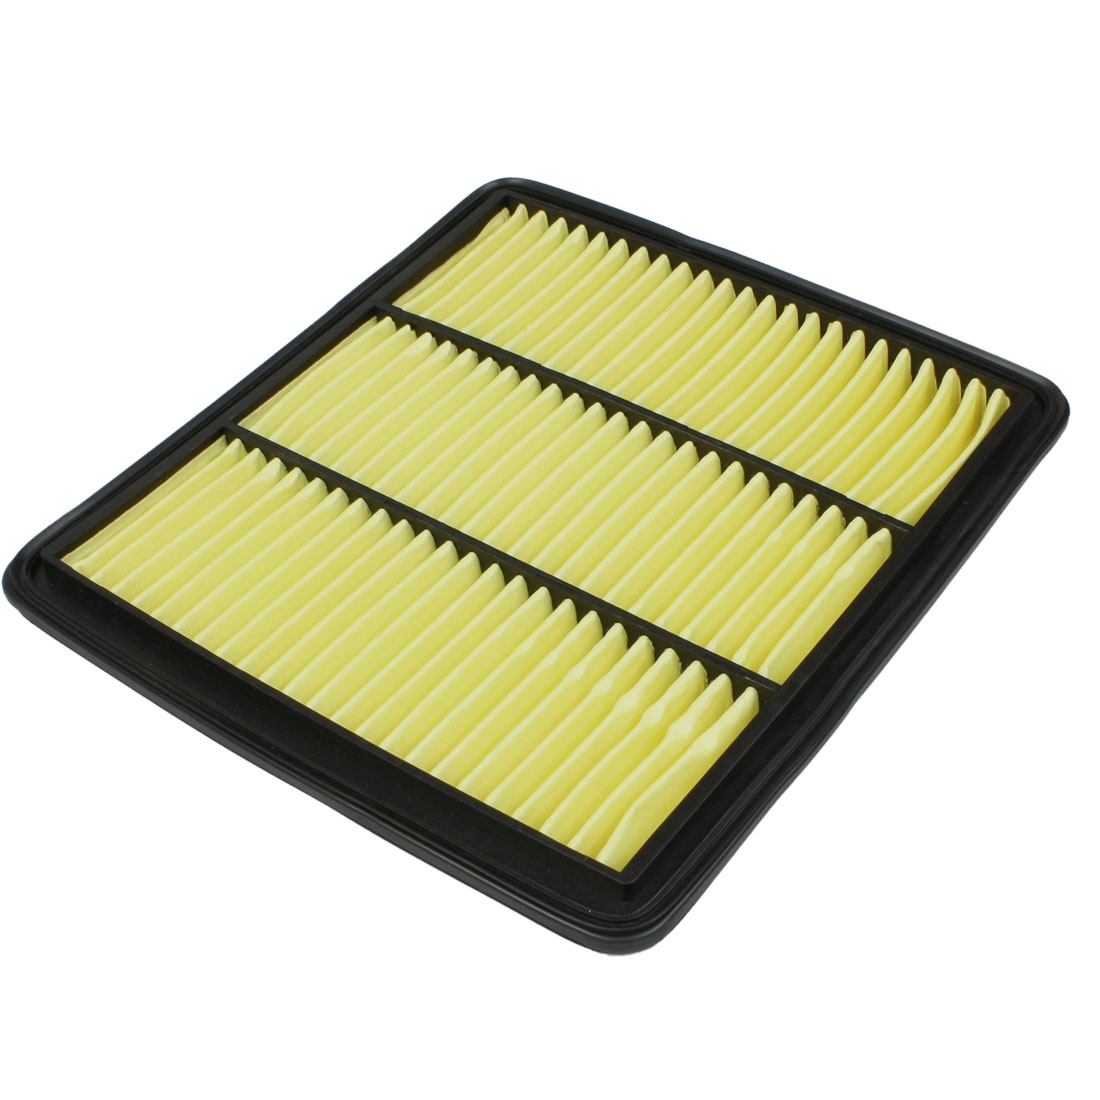 Car Air-intake System Panel Air Filter Black Yellow 16546-JN30A-C139